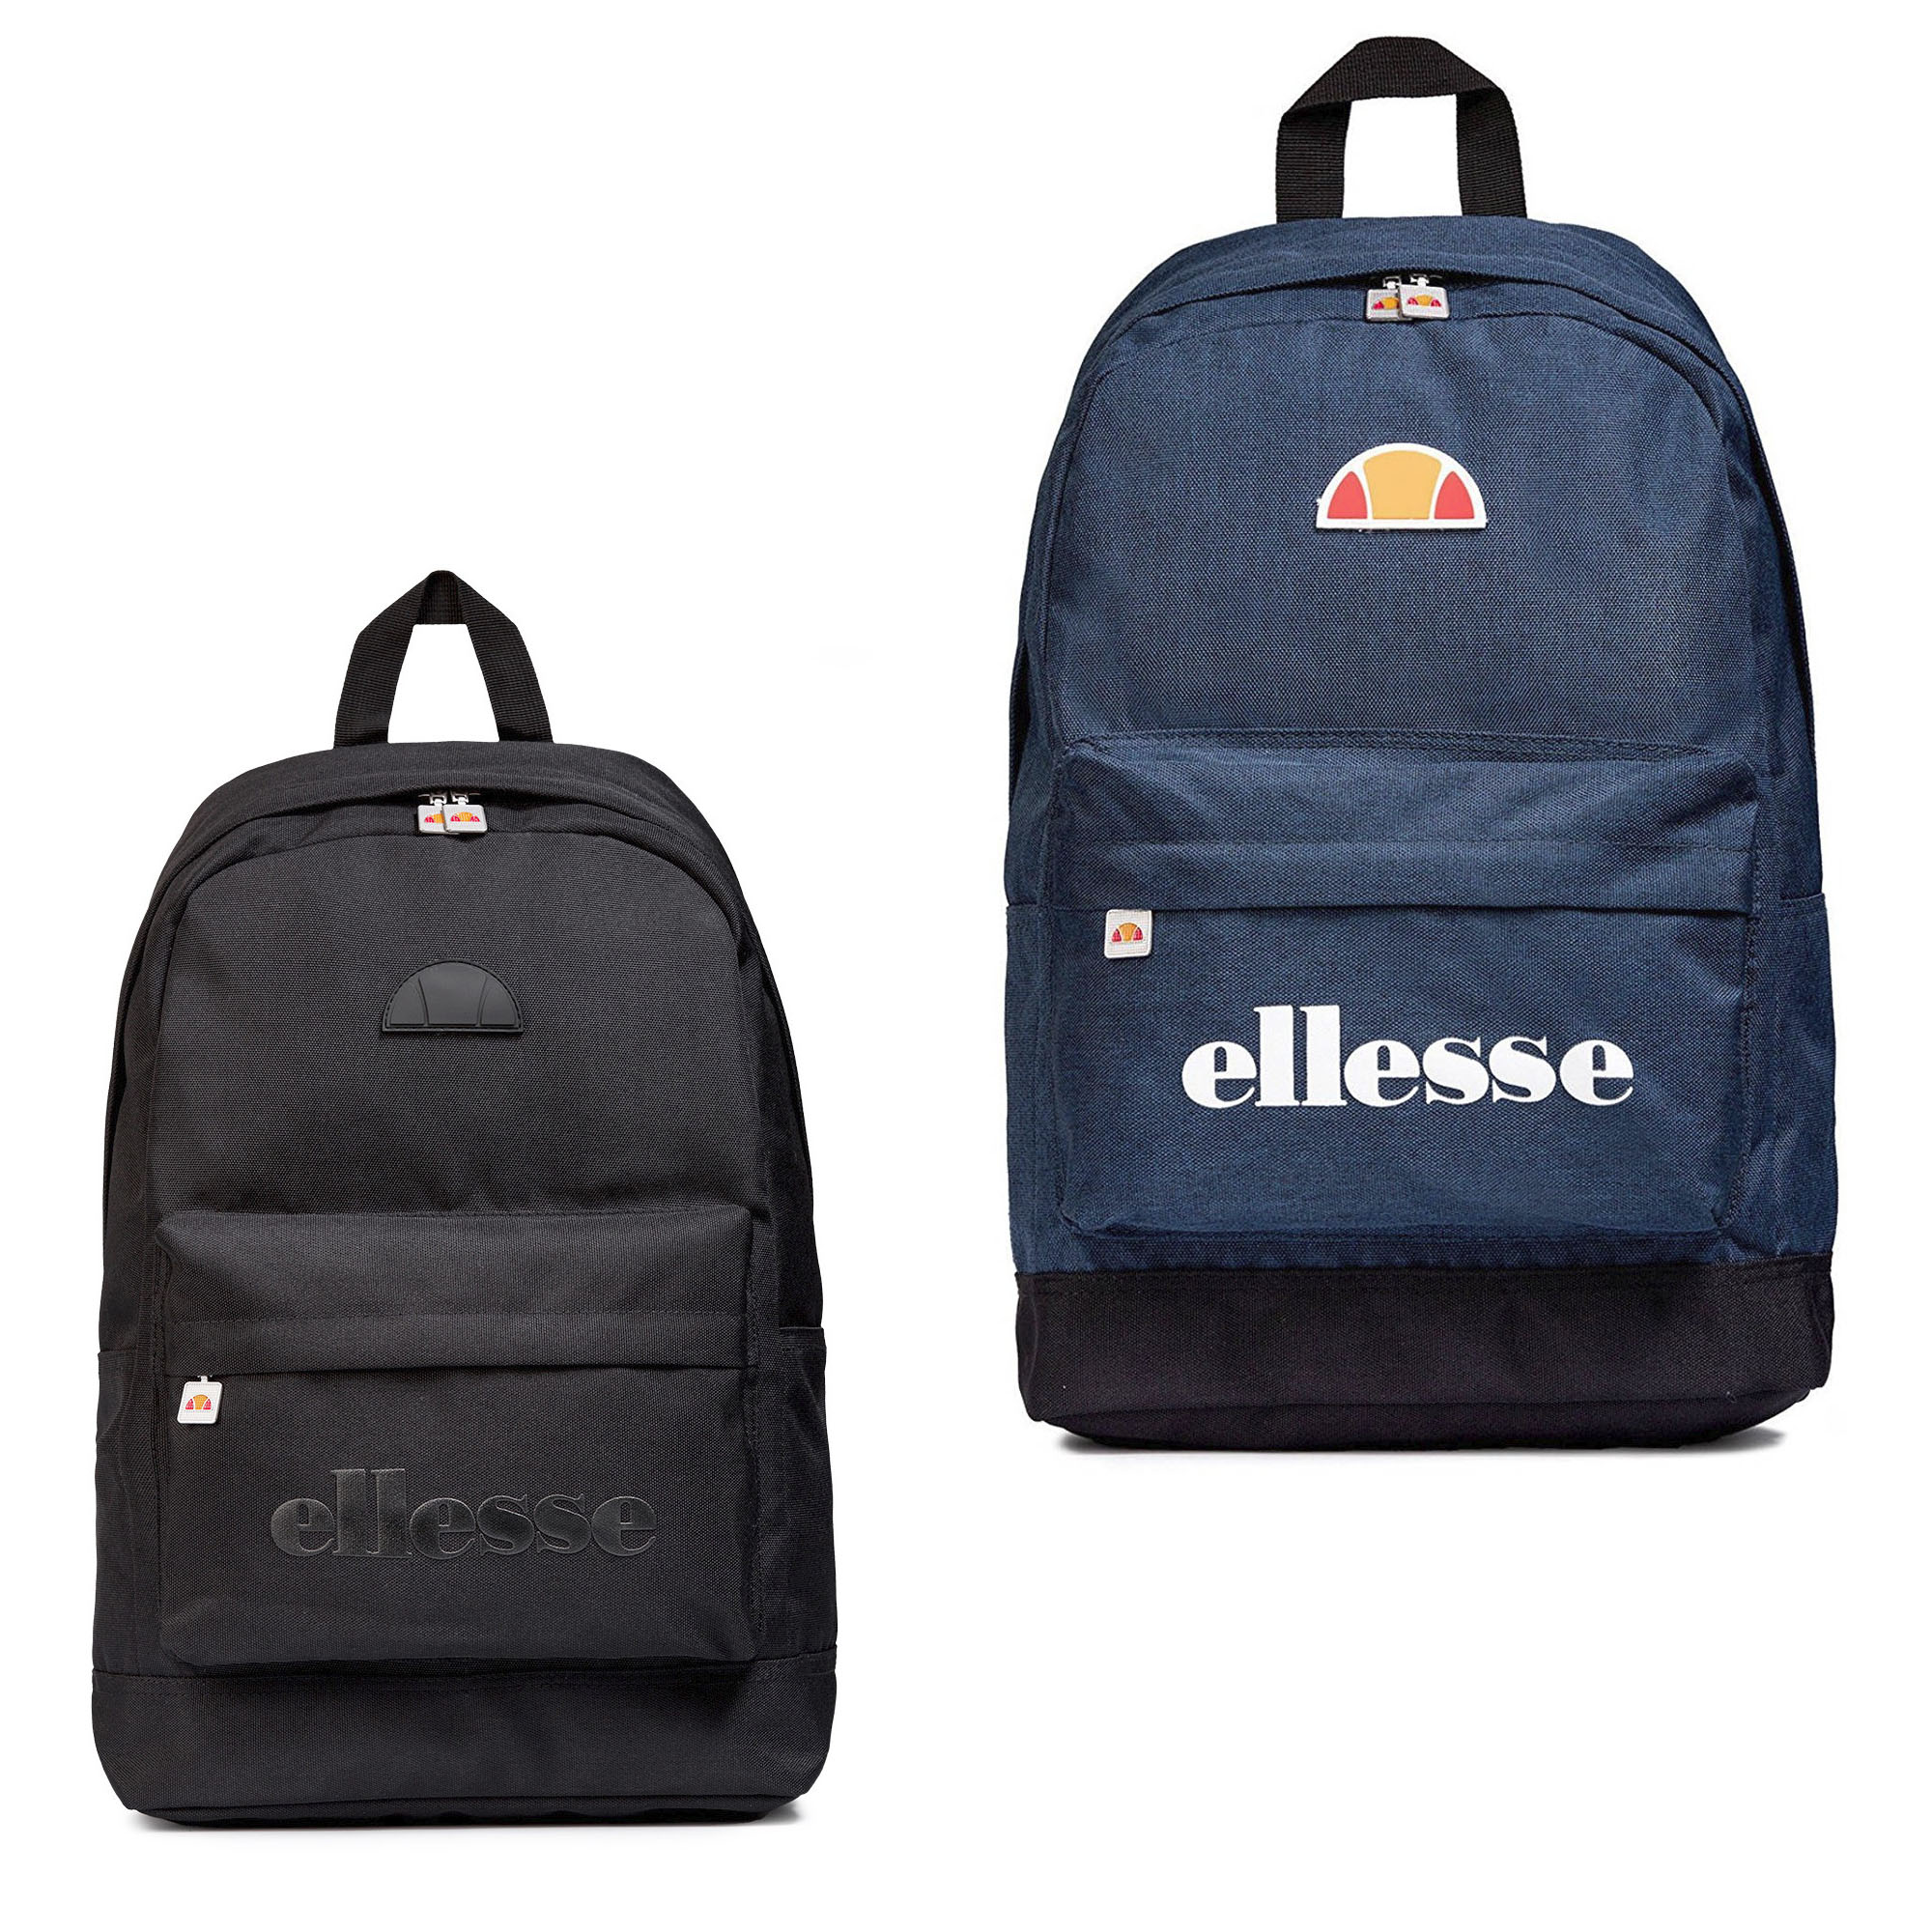 Details about Ellesse Heritage Regent II Backpack Rucksack School College  Sports Bag 0eef84c784